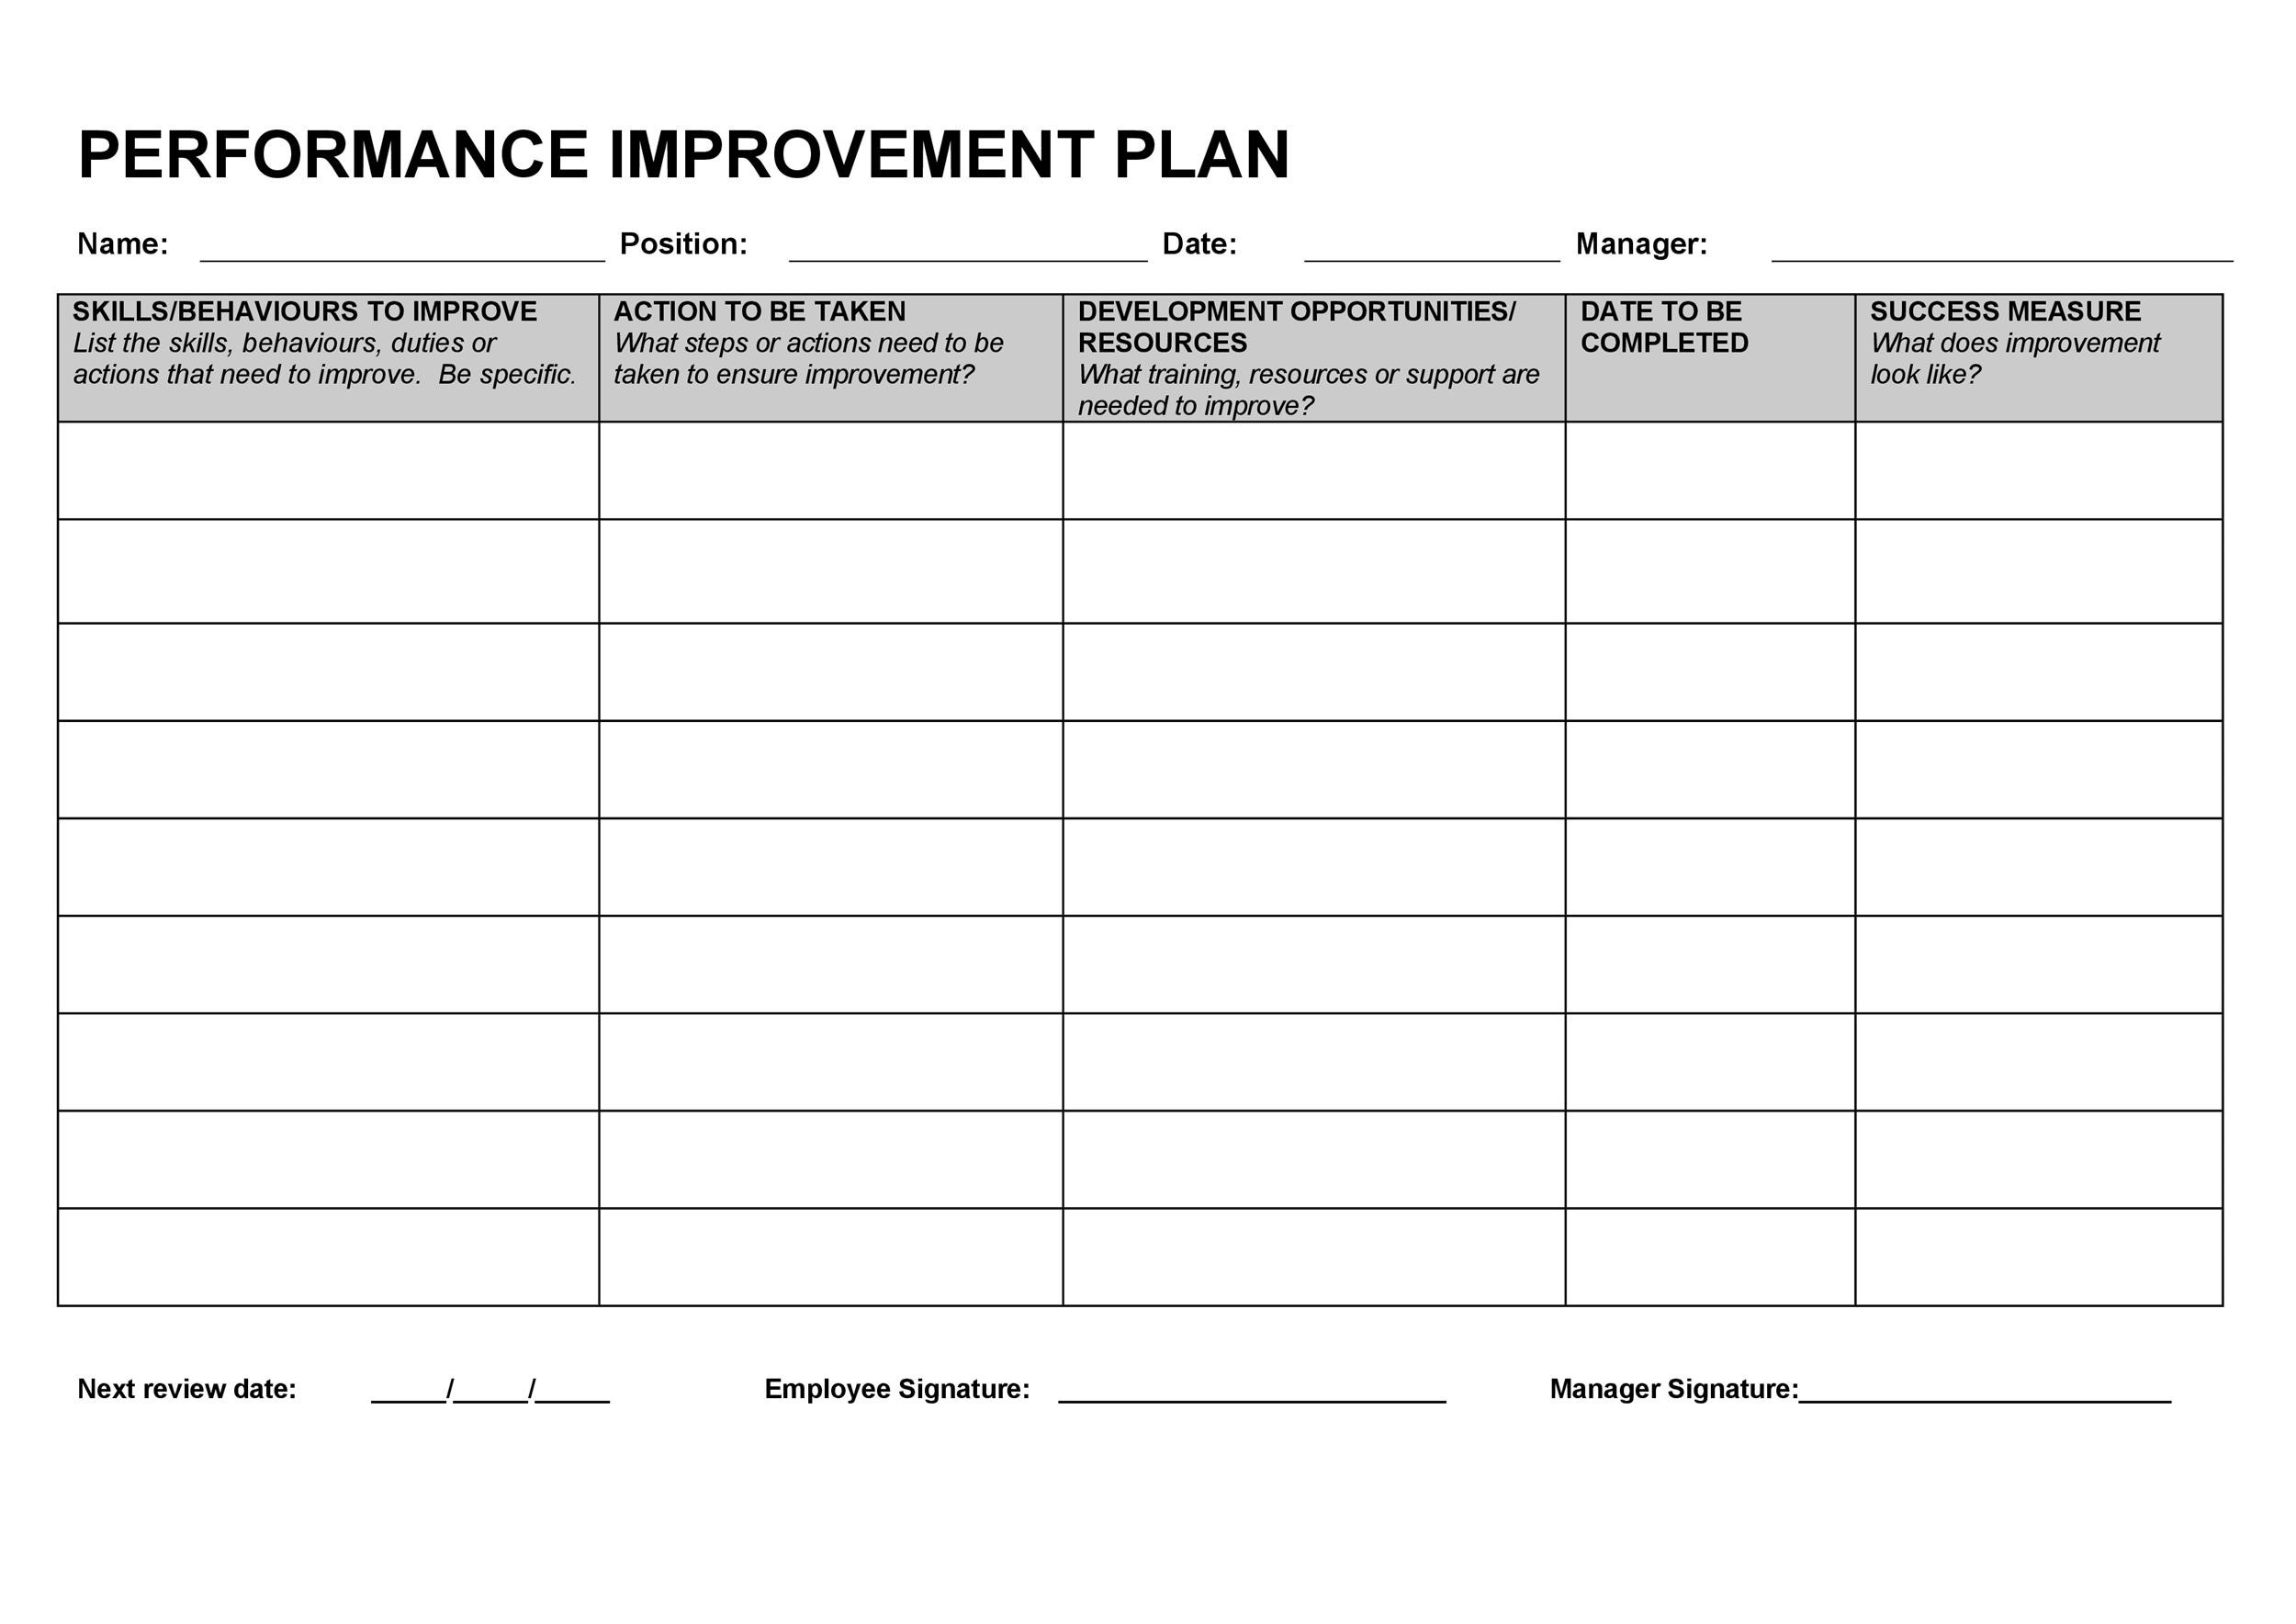 40+ Performance Improvement Plan Templates & Examples